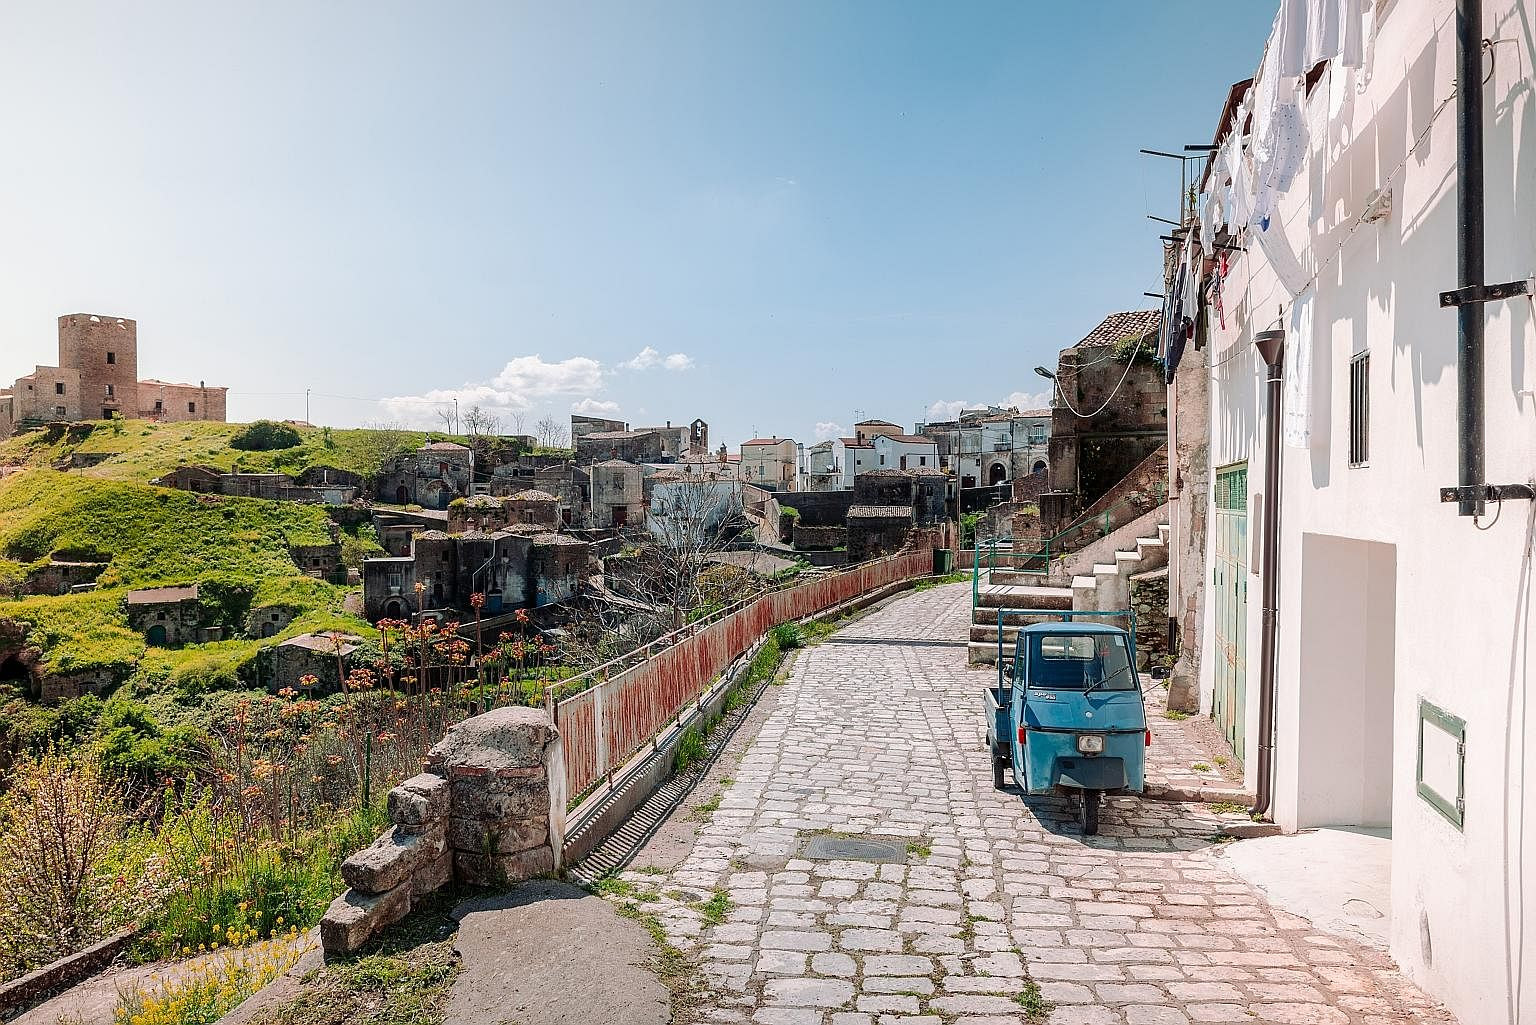 Matera and its environs are home to more than 150 rock-hewn, or rupestrian, churches. The photo above shows frescoes on the walls of the rock church of San Giuliano, which is accessed through the 18th-century Church of Sant'Agostino An Airbnb home (a